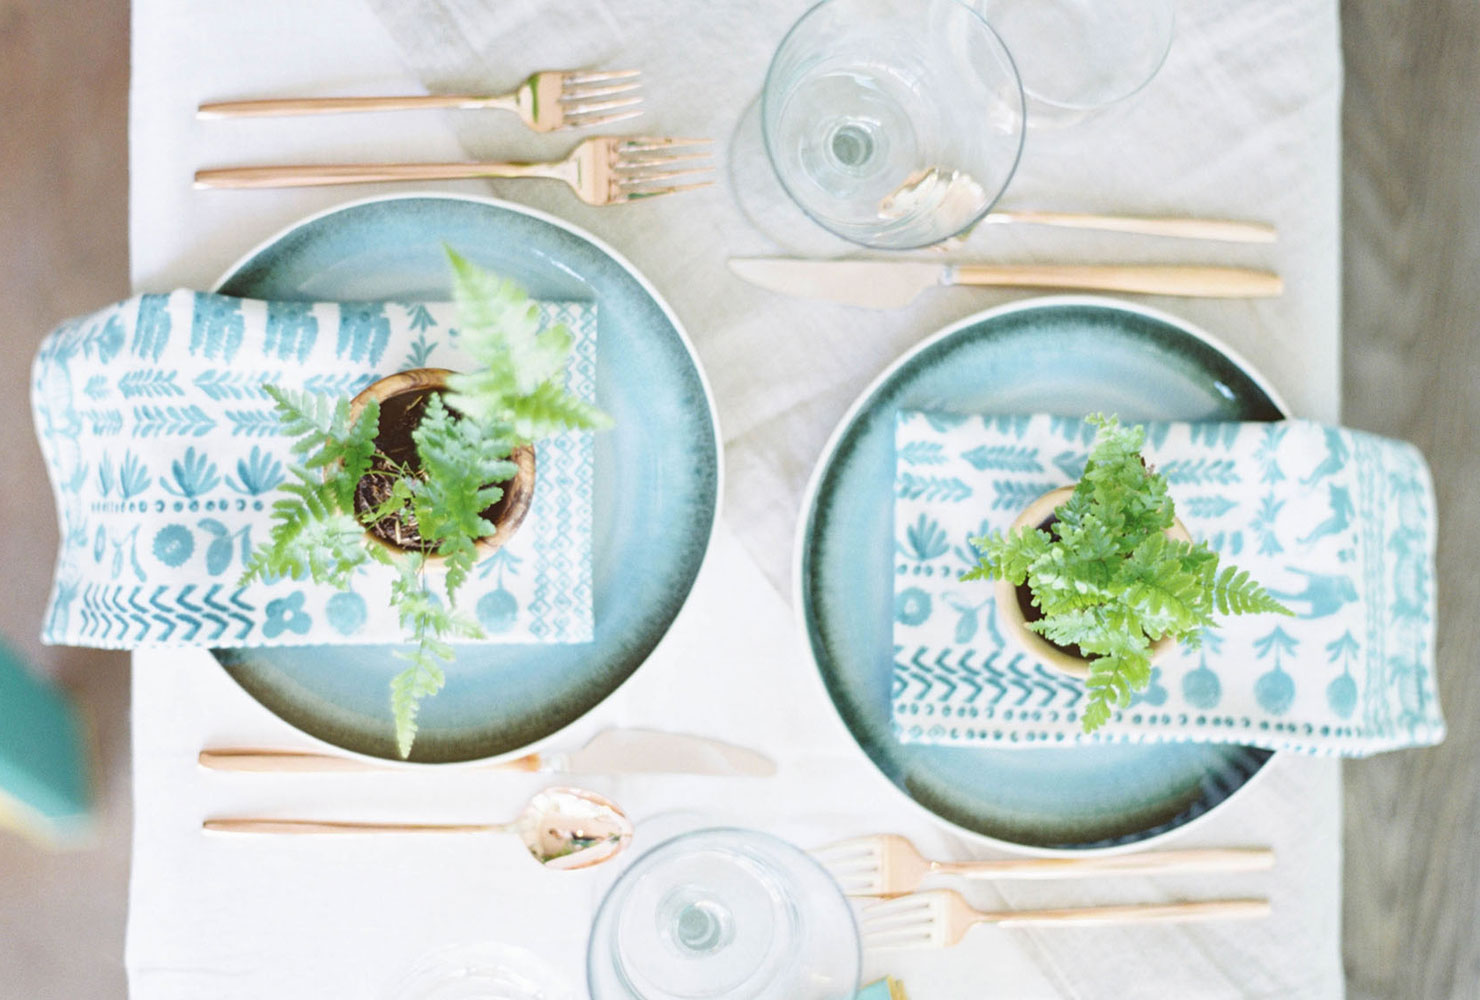 Blue plates with gold flatware and small green plants